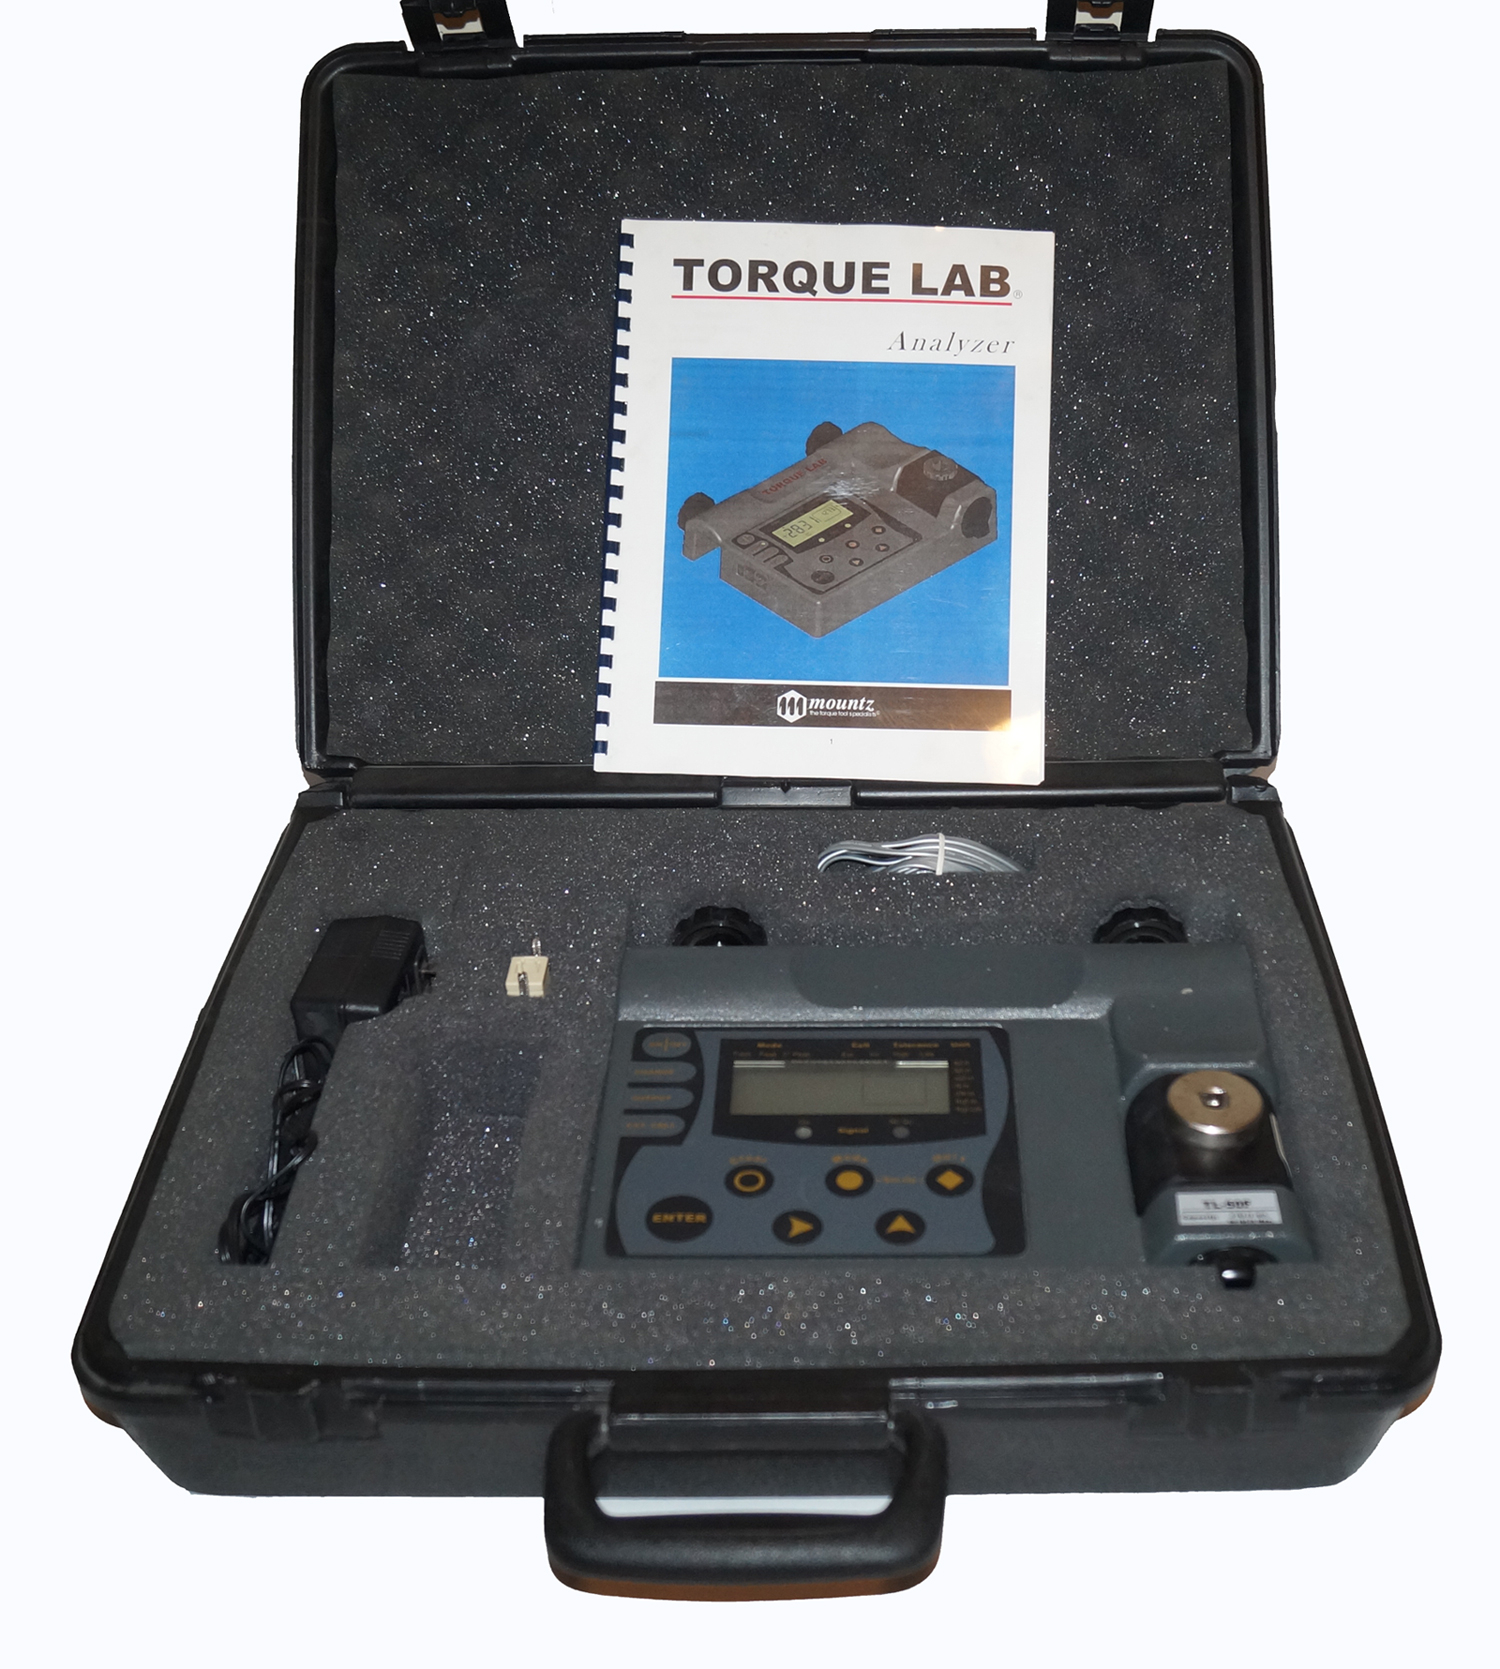 Mountz TL-50F Torque Analyzer